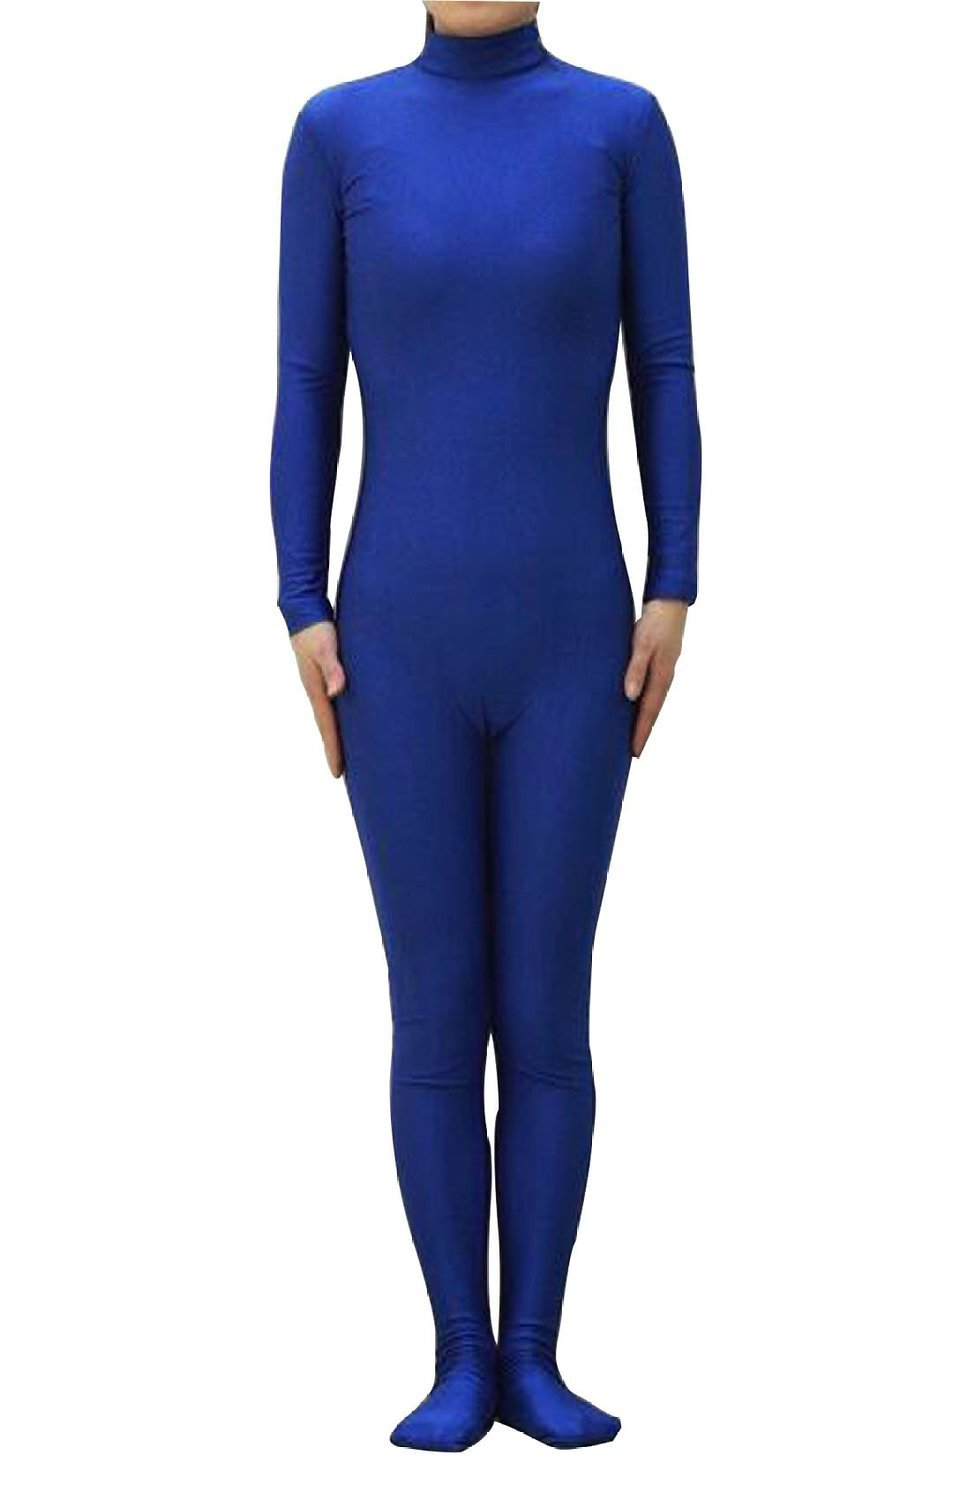 Blue <font><b>Sexy</b></font> Unisex <font><b>Lycra</b></font> Spandex Zentai Dancewear <font><b>Catsuit</b></font> without Hood Halloween Party Cosplay Zentai suit image